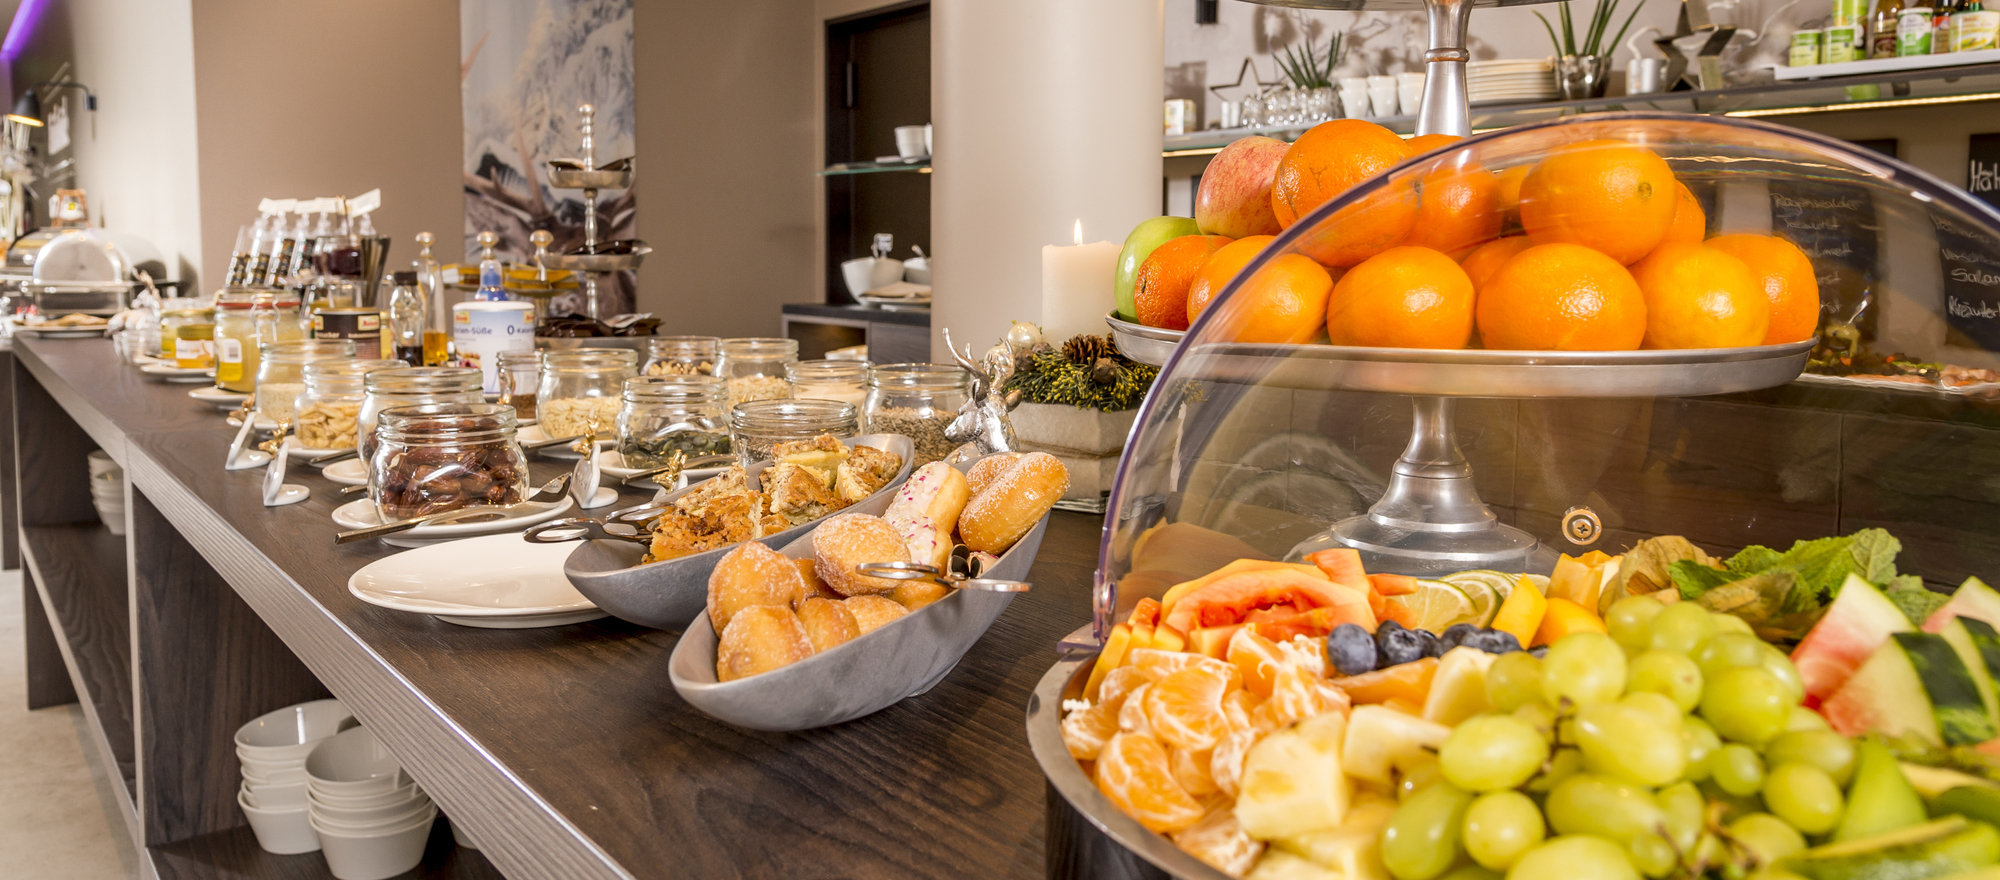 Start your day right at the at the Ringhotel Looken Inn in Lingen, 4-Sterne Hotel in the Emsland region